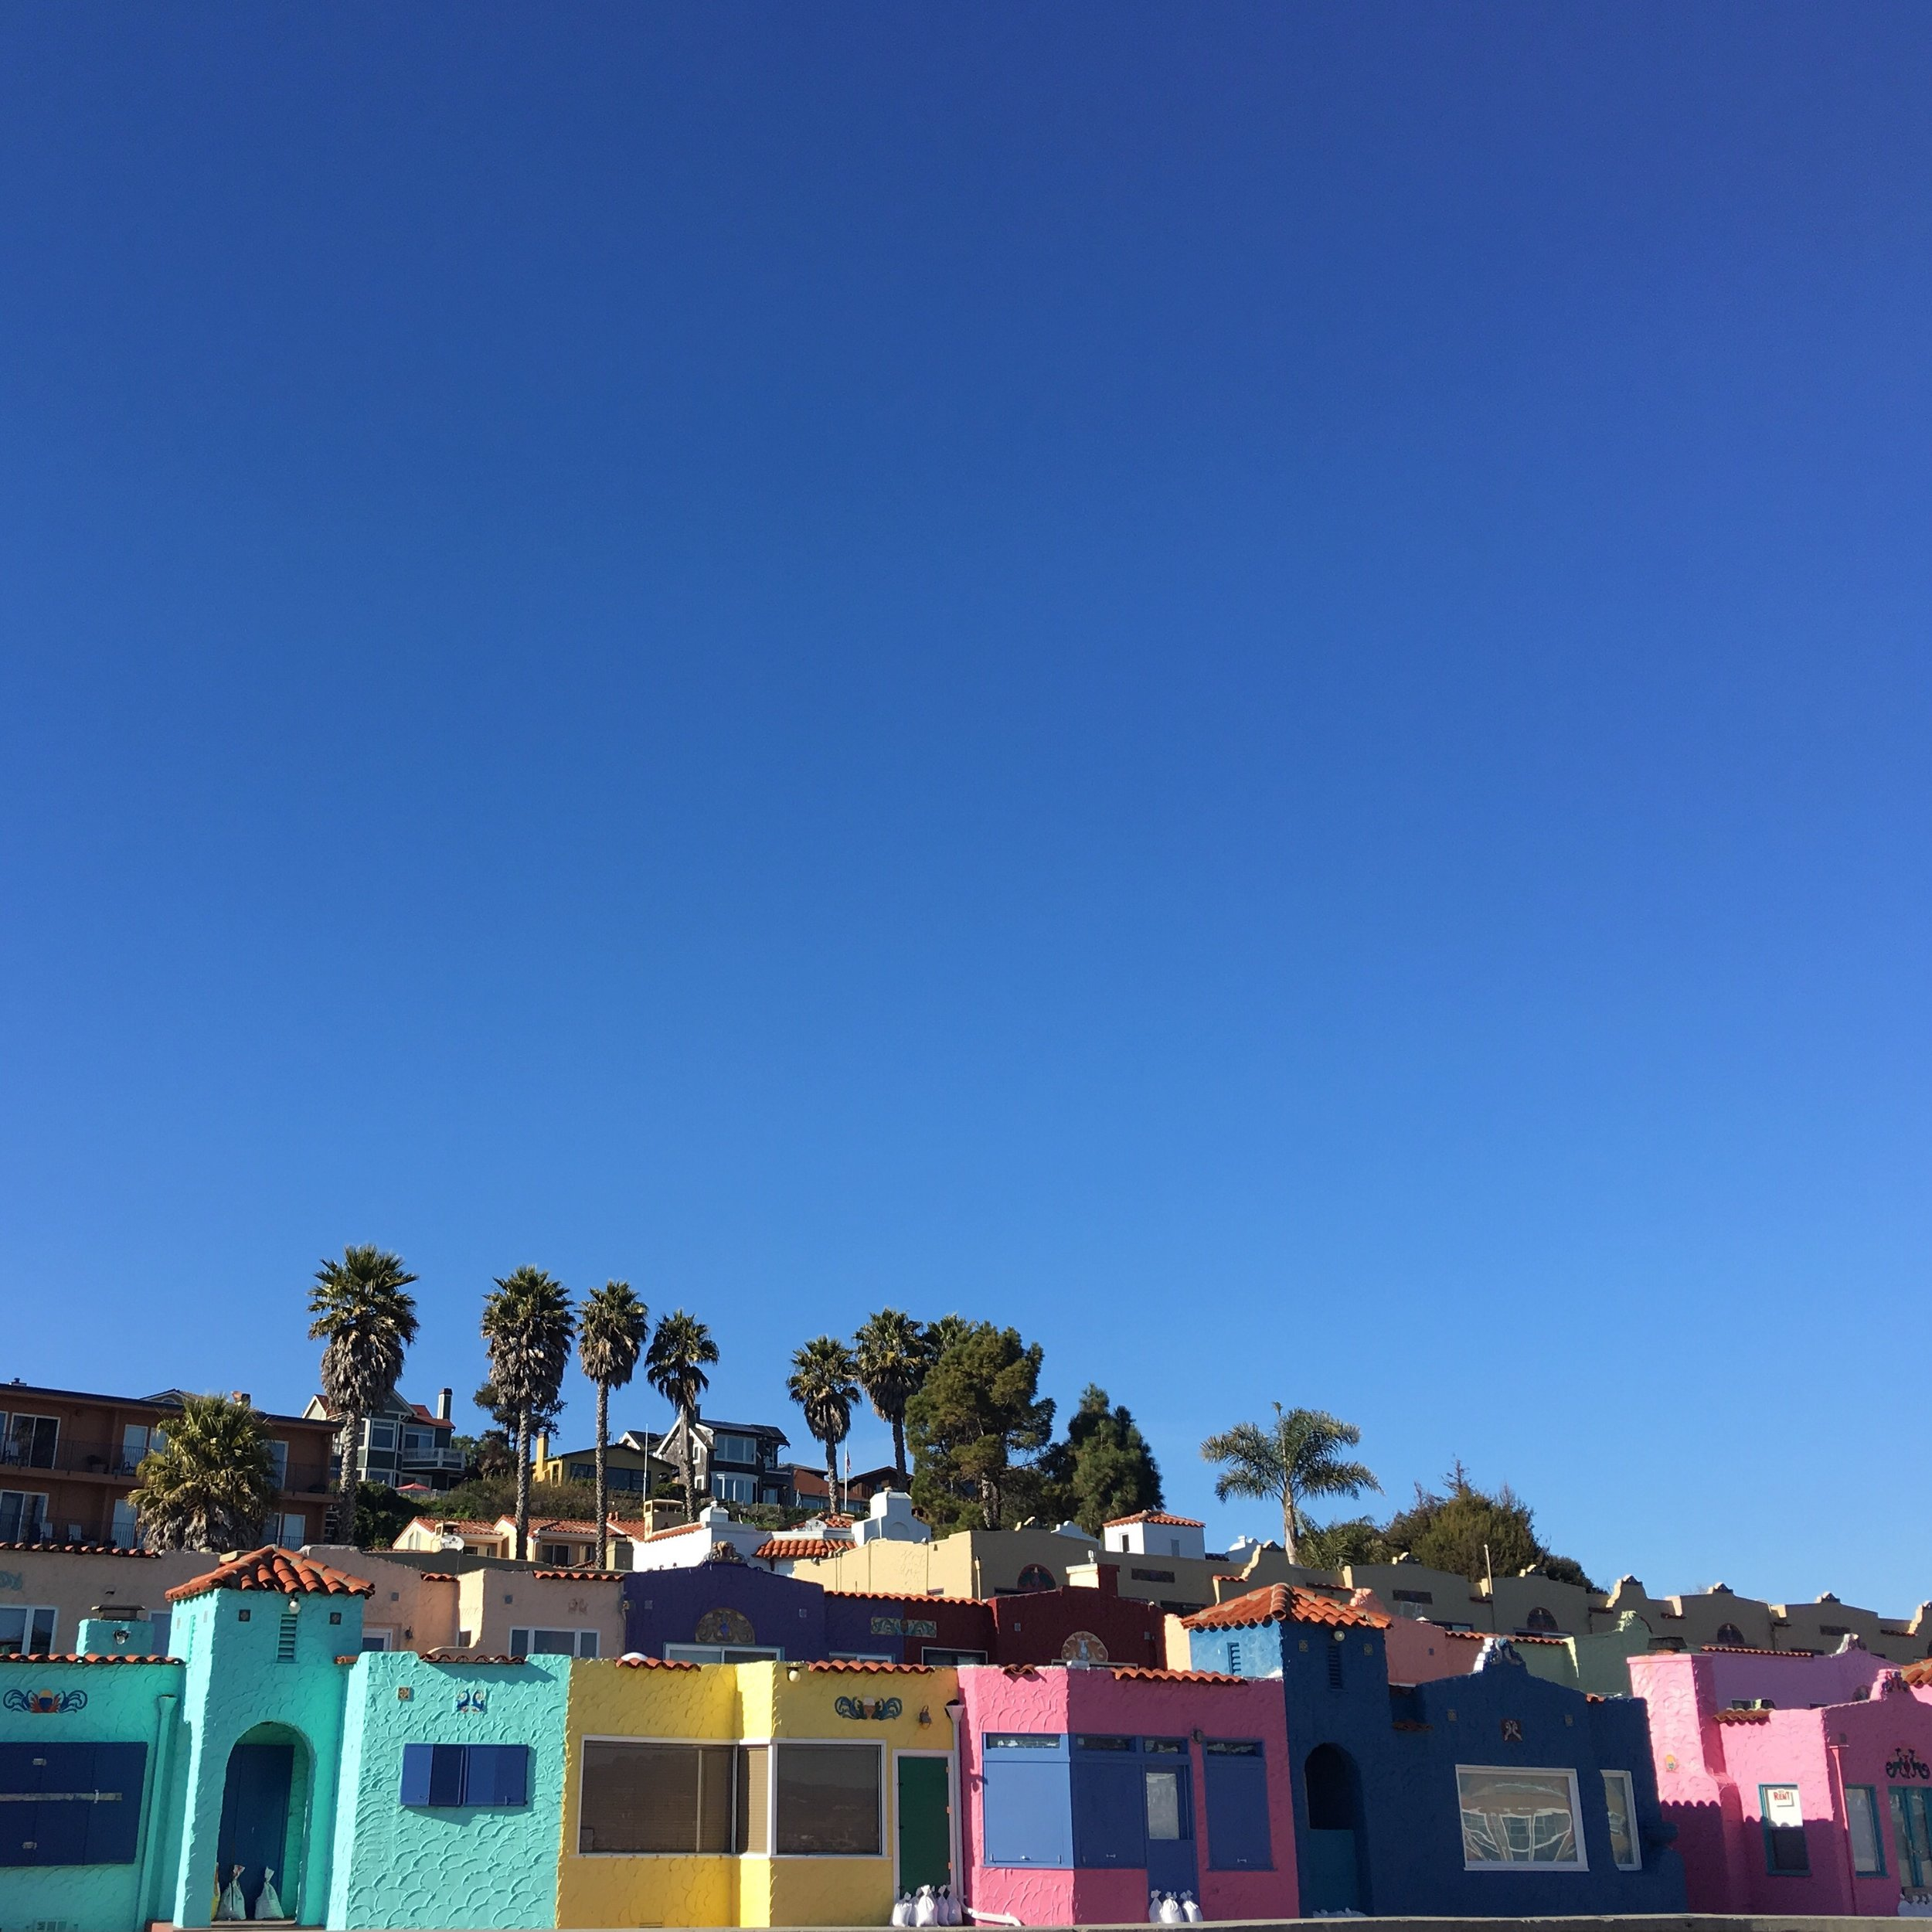 The Venetian Hotel at the Capitola Wharf in California. Bright Colorful Beach Buildings